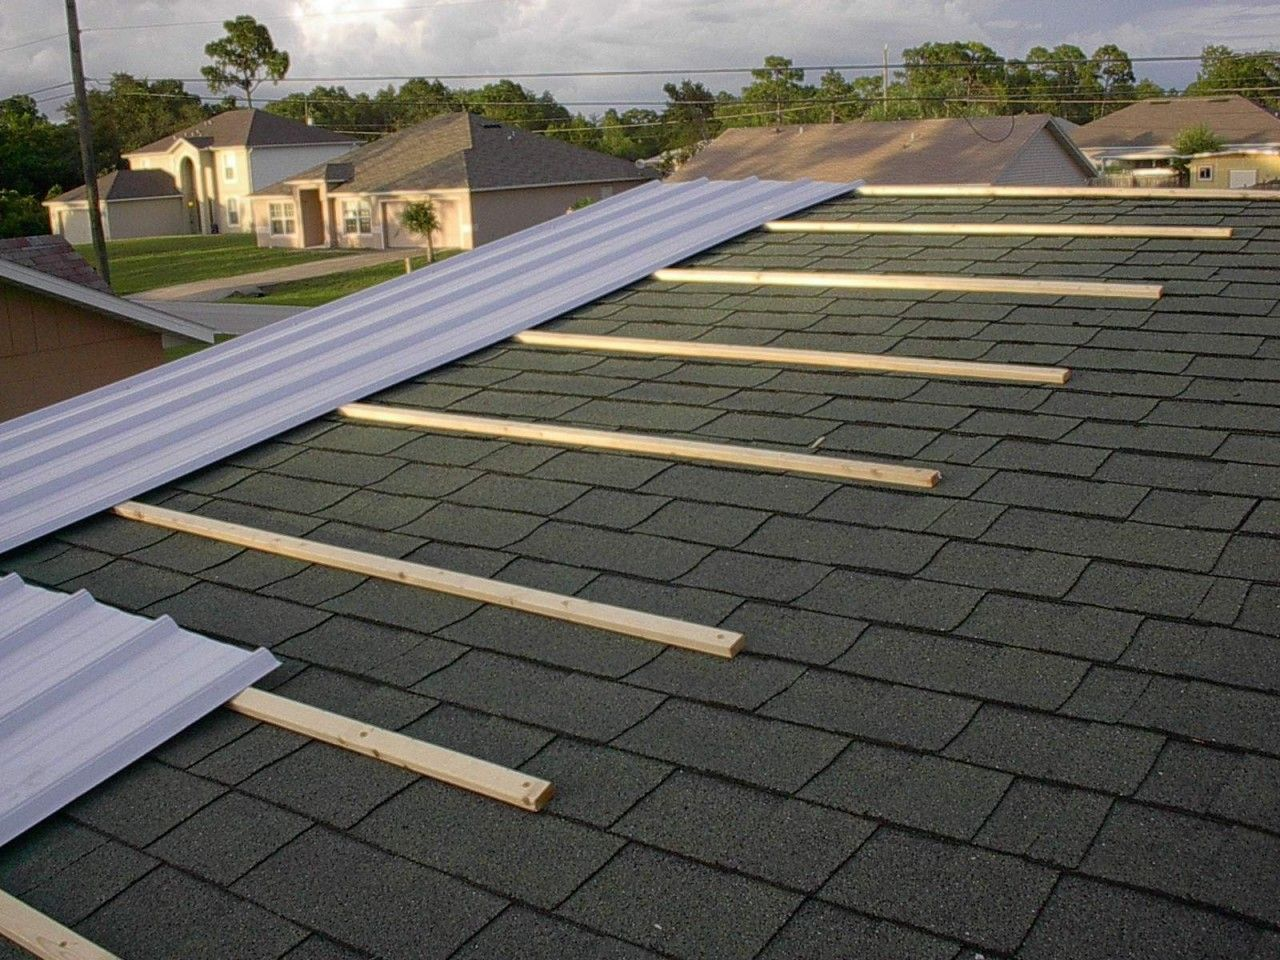 Can You Install A Metal Roof Over Shingles Absolutely Call And Ask Us How 5738034700 Metalroof Metal Roof Over Shingles Metal Roof Metal Roof Installation